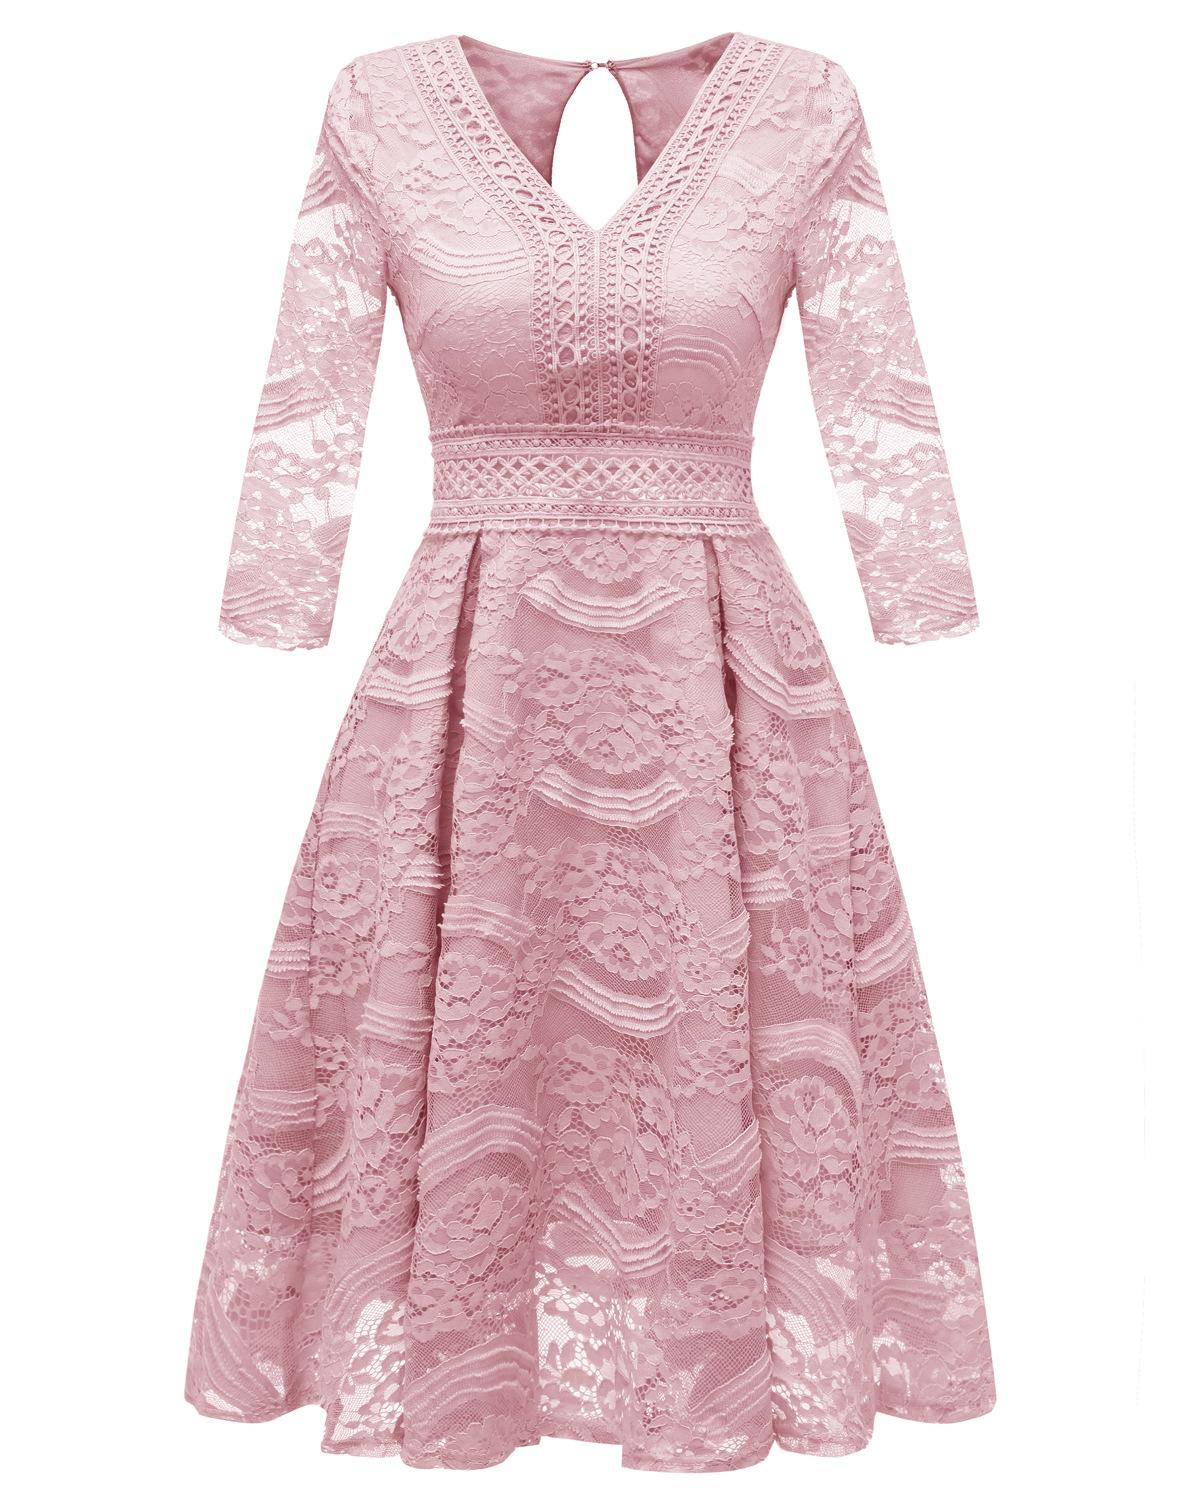 V-neck Pink Lace   Cocktail     Dresses   Robe Long Sleeves Backless elegant formal party   dress   2019 Short Vestidos Homecoming   Dress